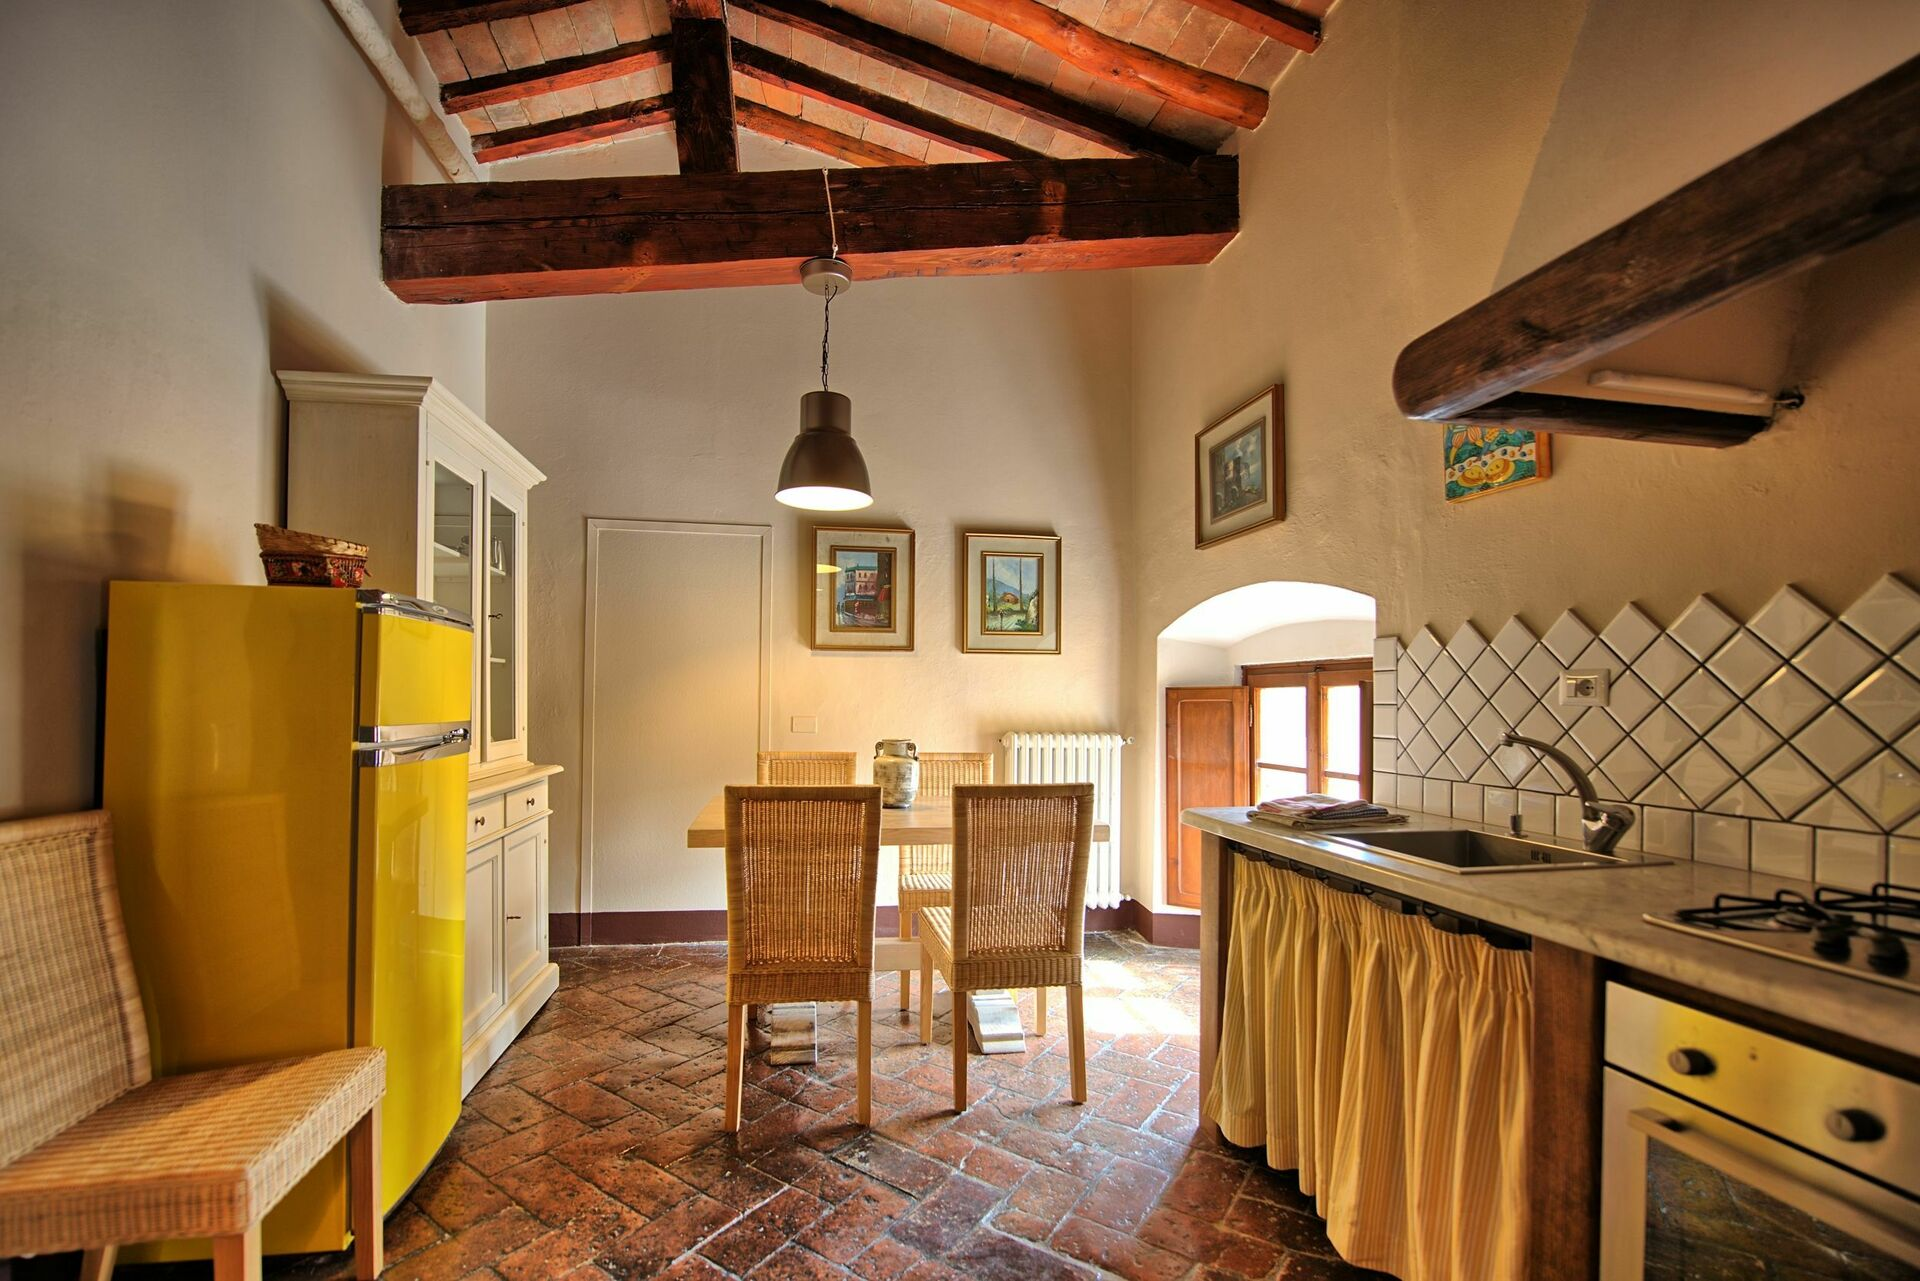 Borken Zwembad Montegufoni 19b Exclusive Holiday Rental In Montegufoni Castle